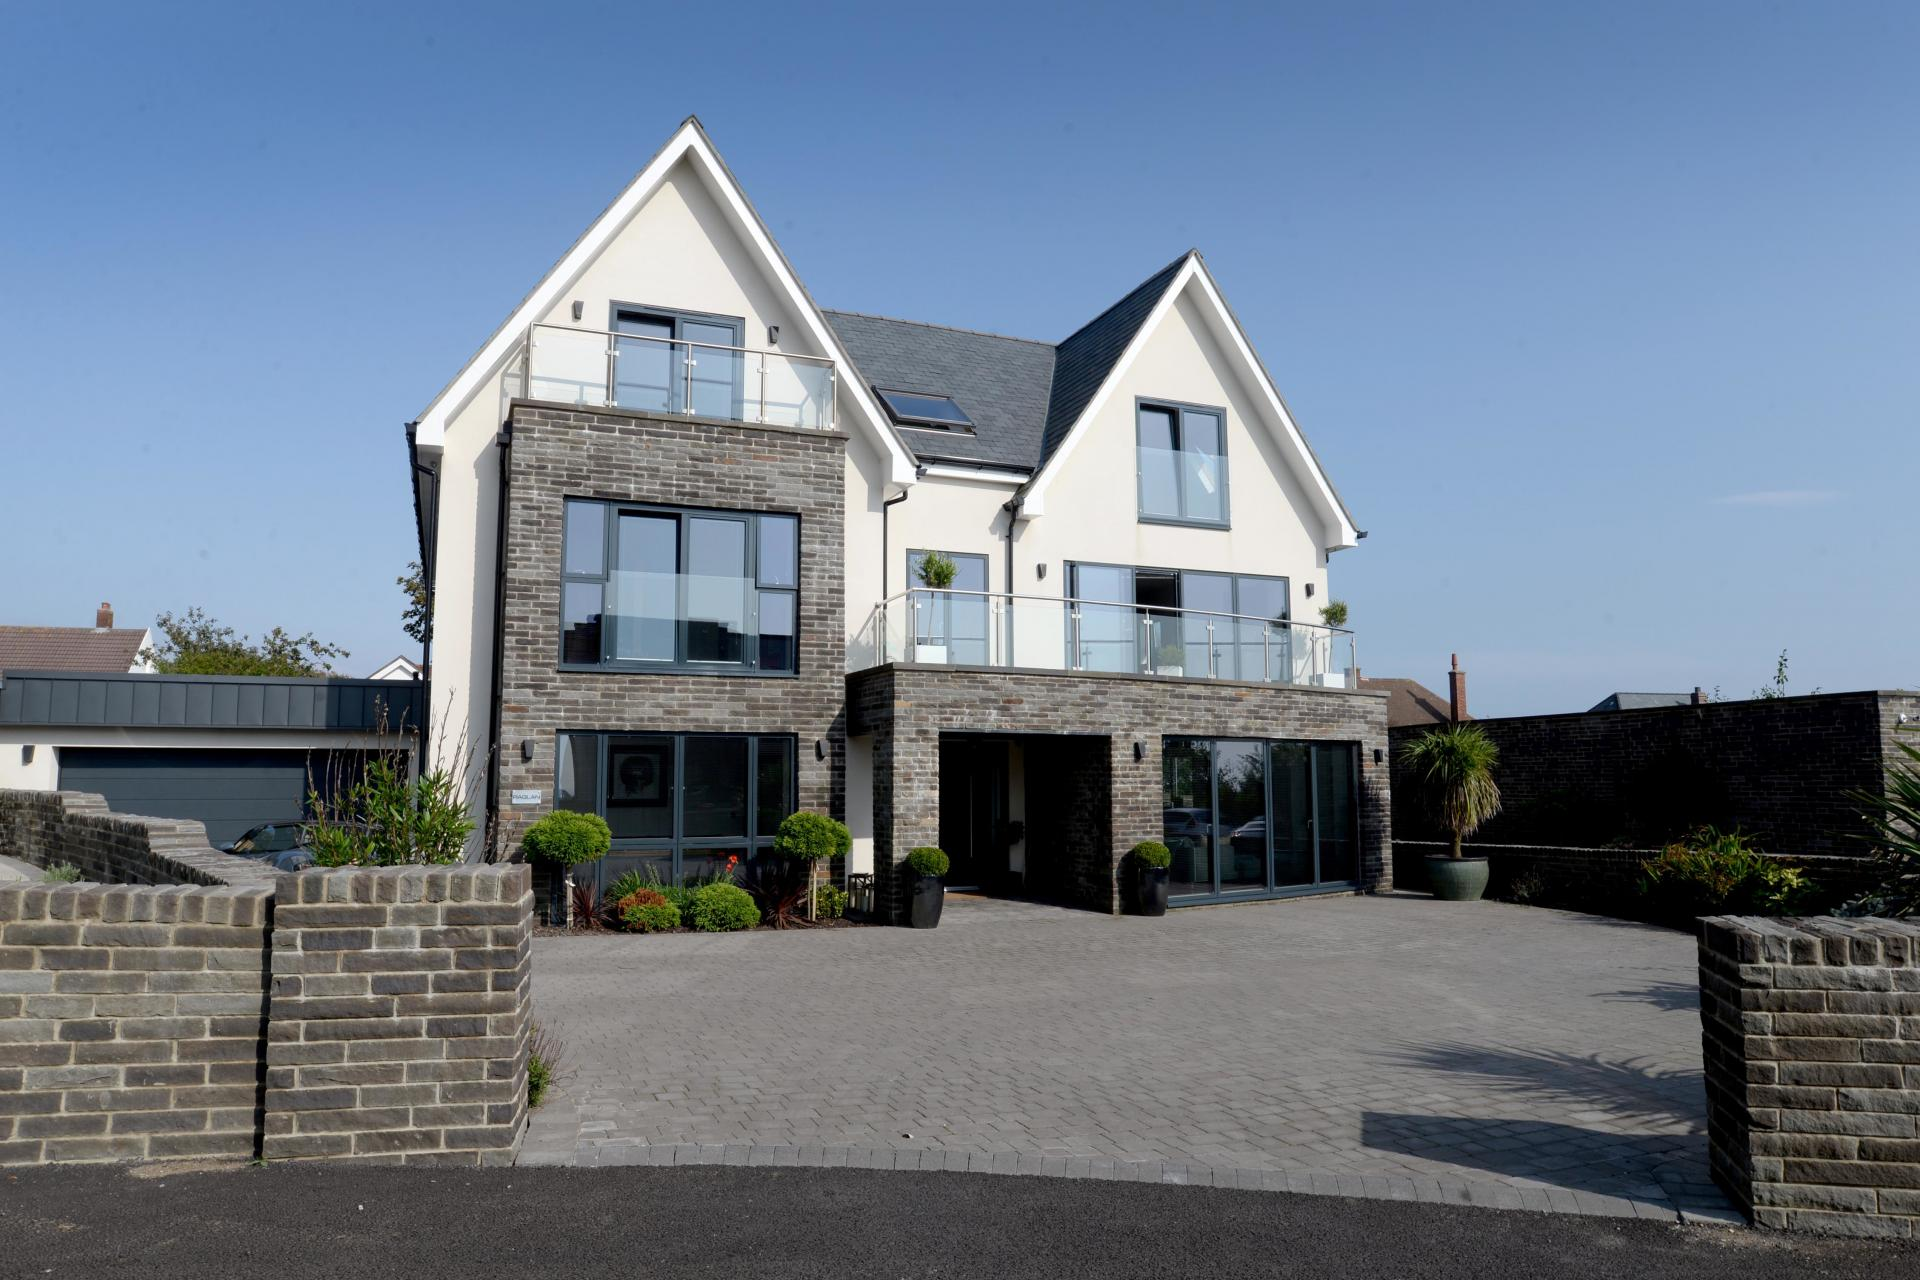 6 bedroom house for sale in swansea for Six bedroom house for sale